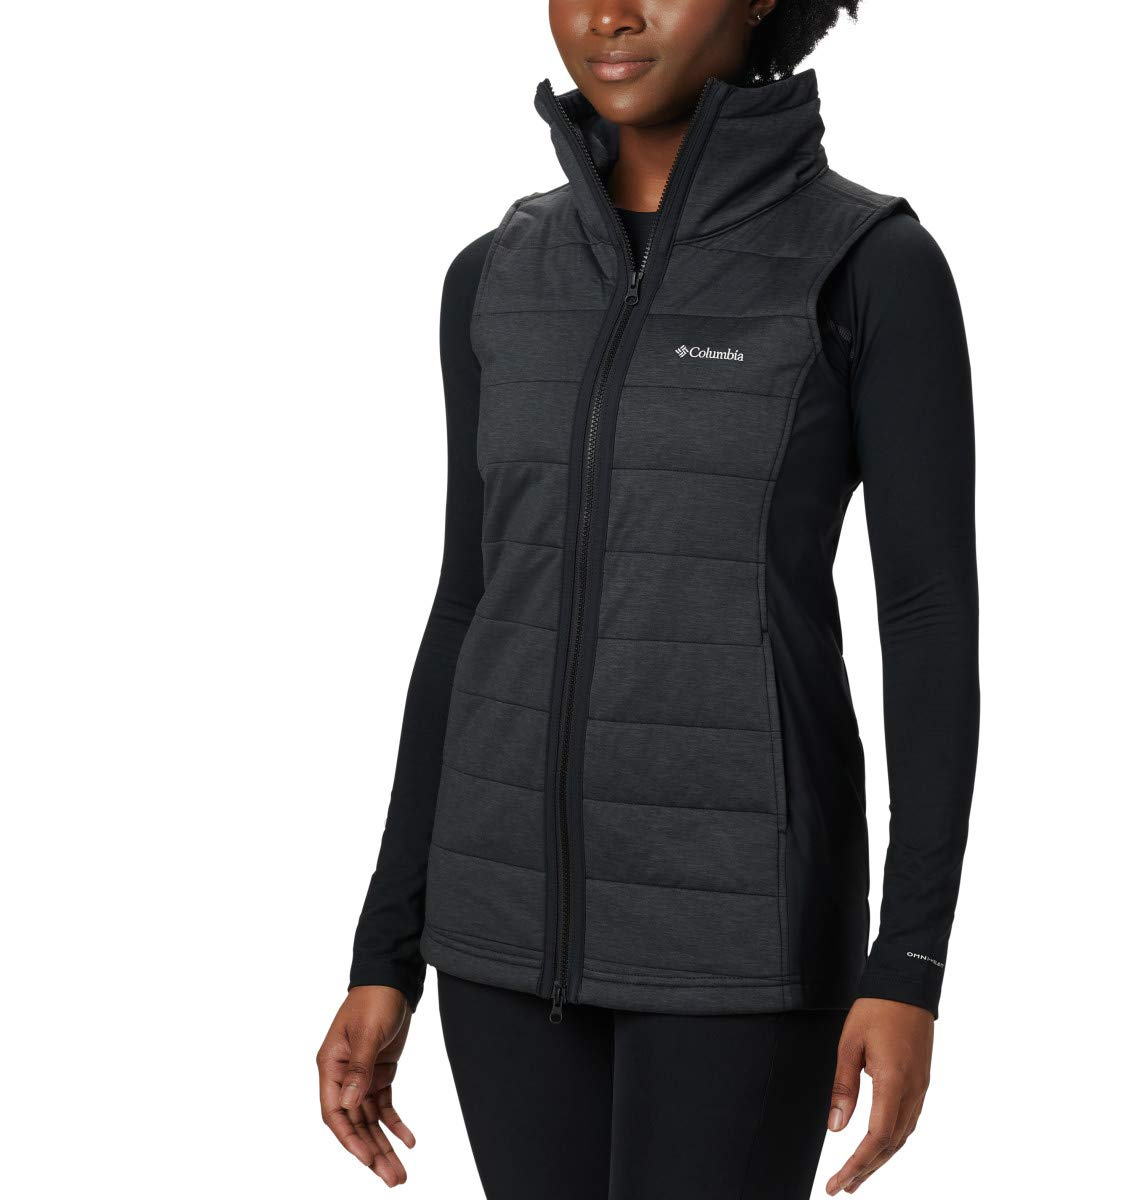 Columbia Women's Place Vest, Black, Small by Columbia